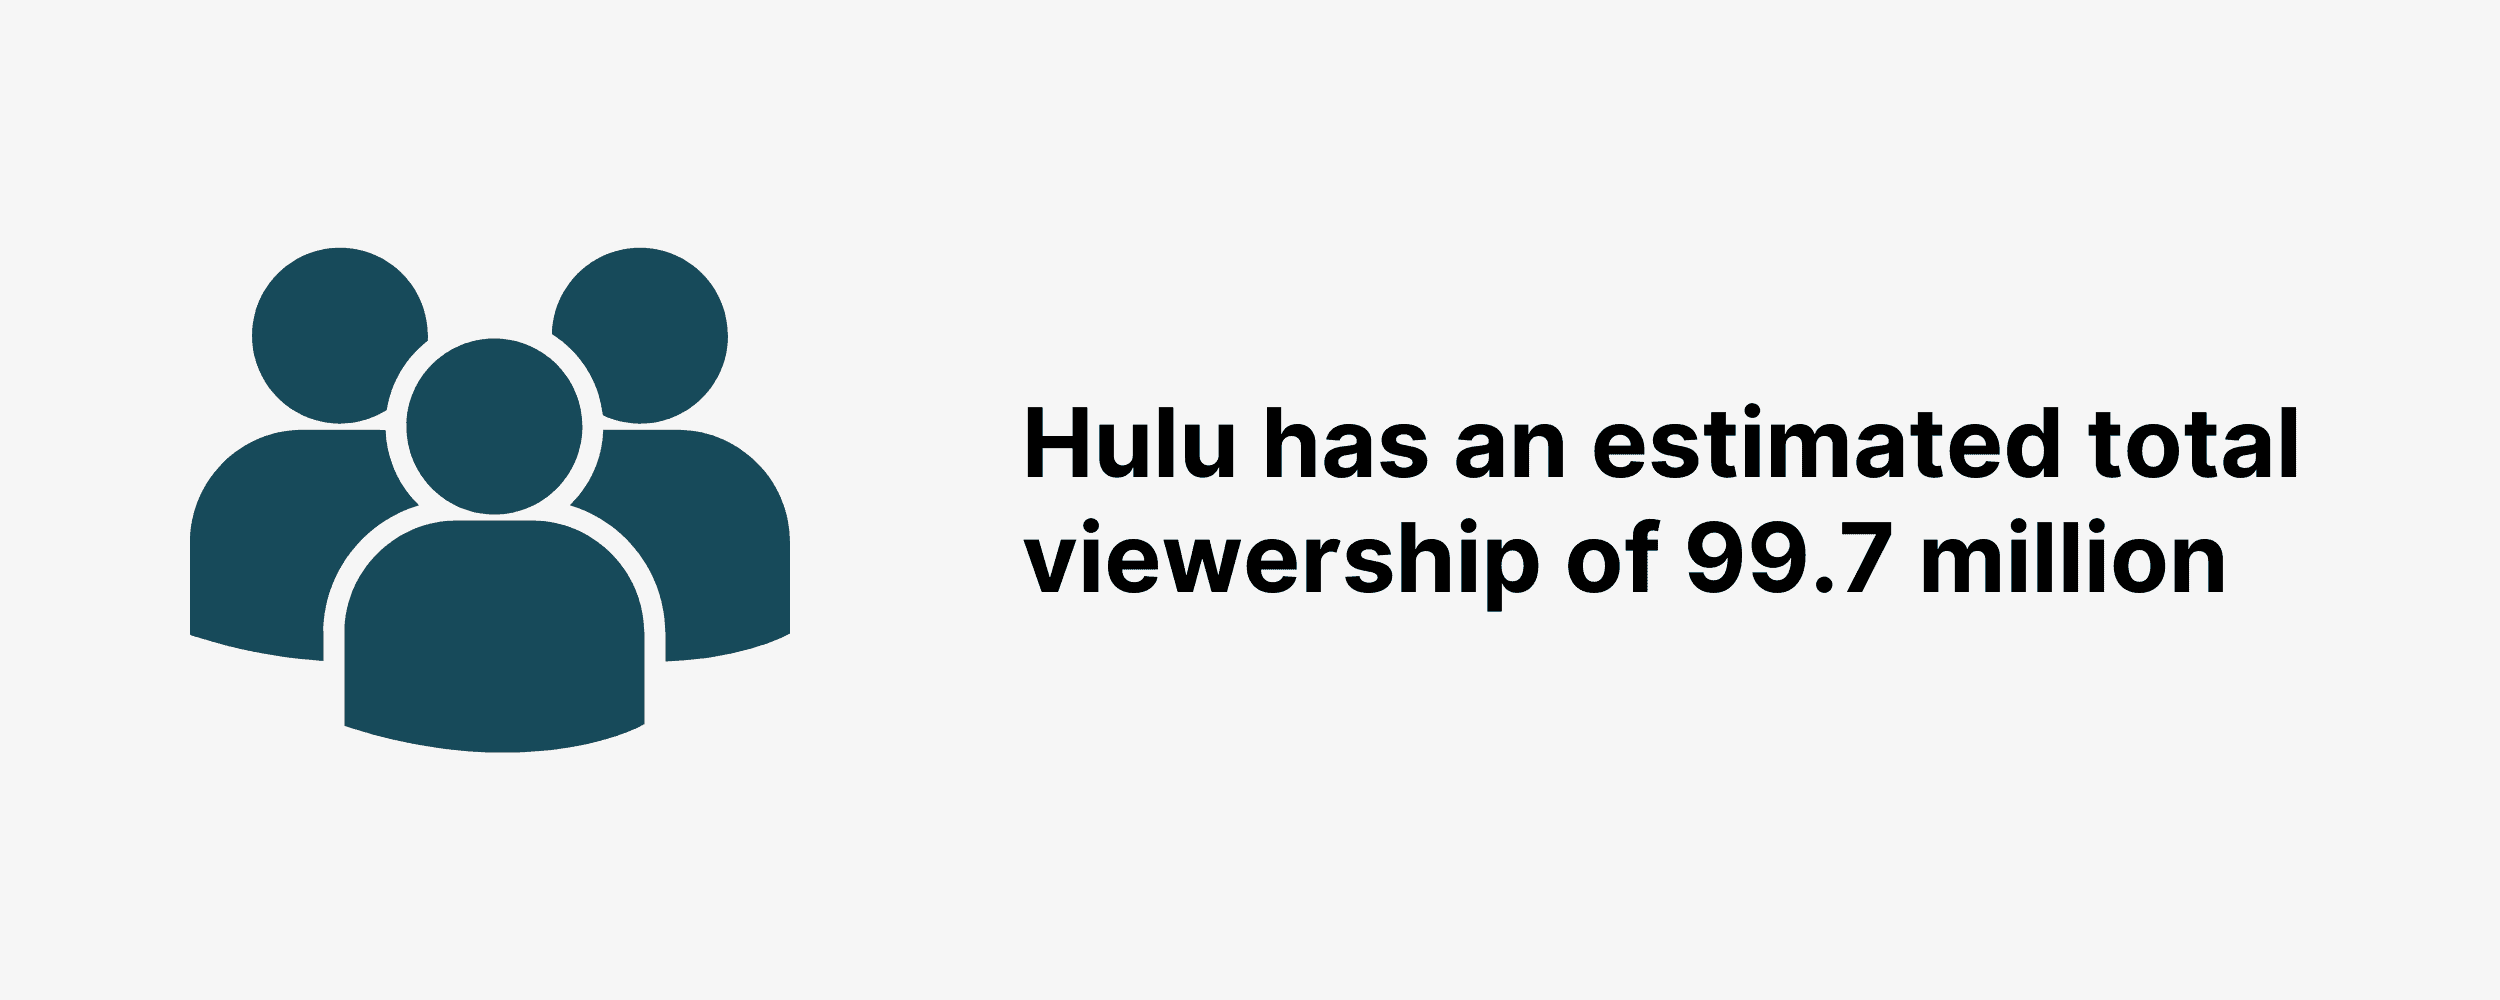 Hulu has an estimated total viewership of 99.7 million